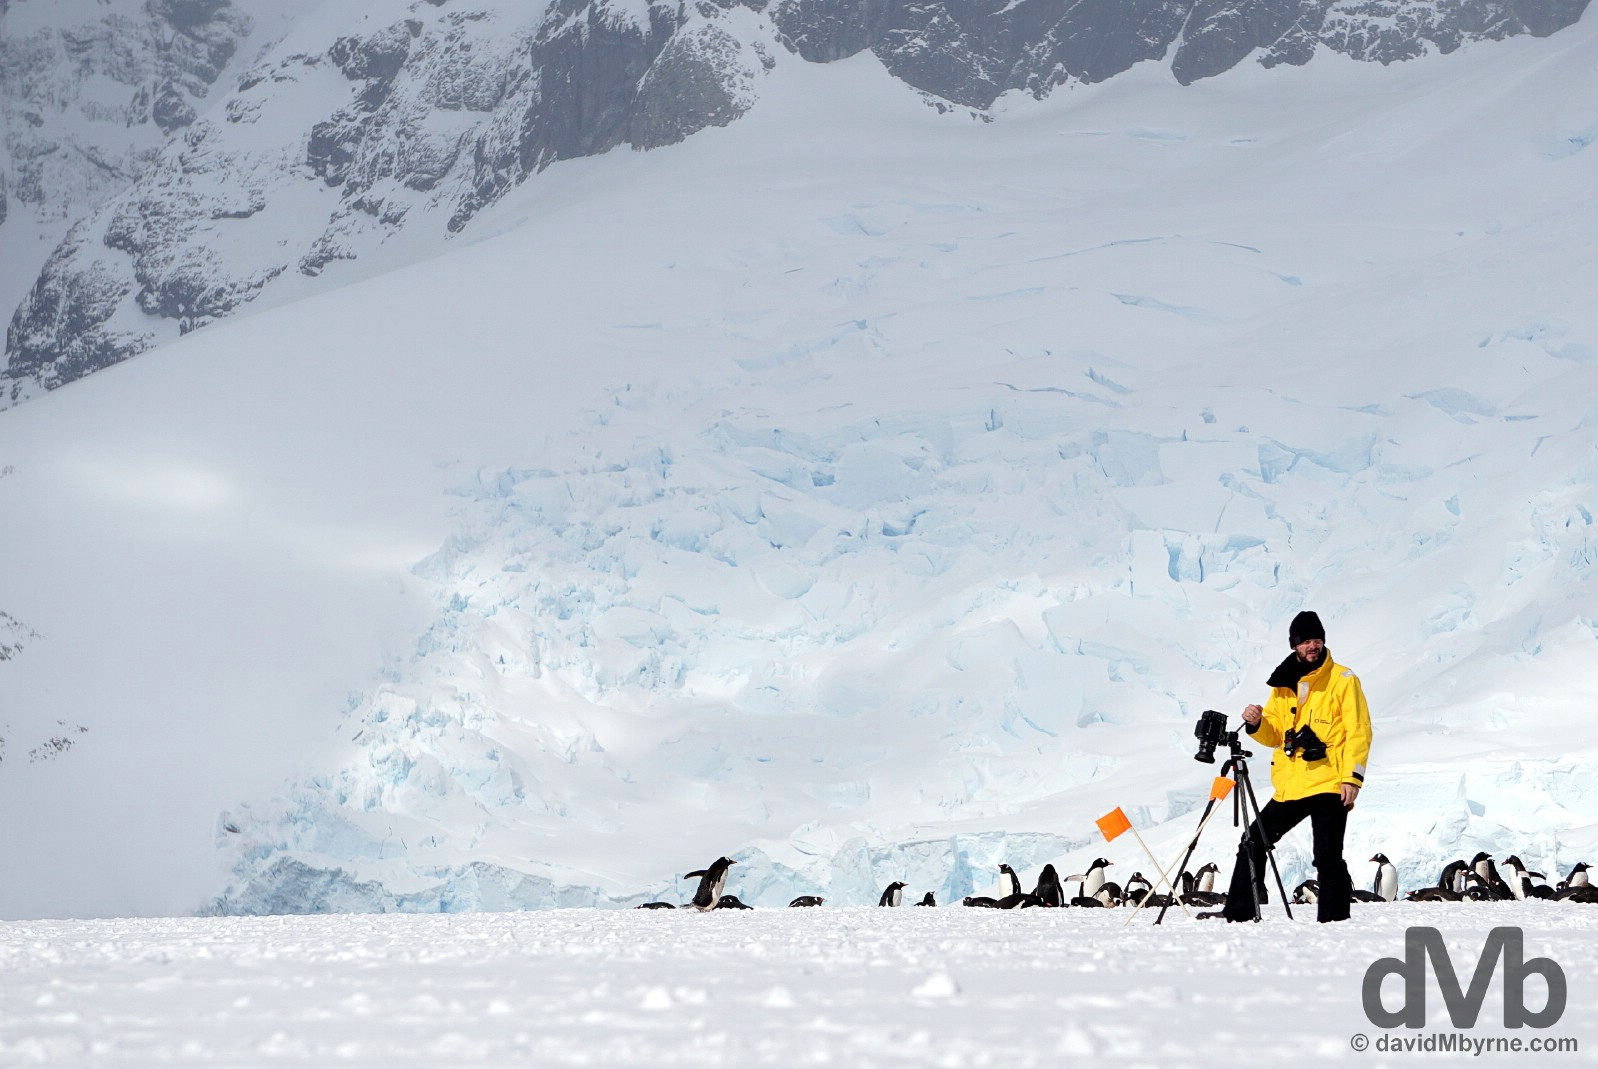 Cuverville Island, Antarctic Peninsula. December 1, 2015.